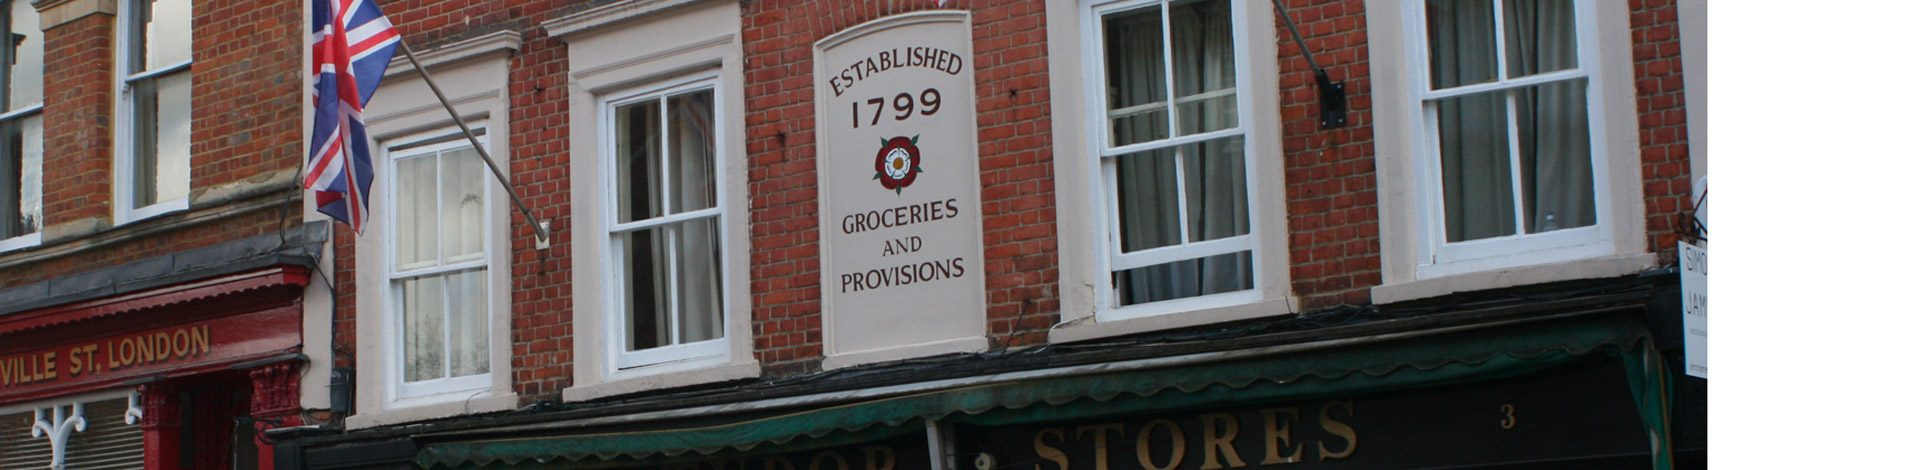 Residential flats above Grocers established in 1799 with a UK flag